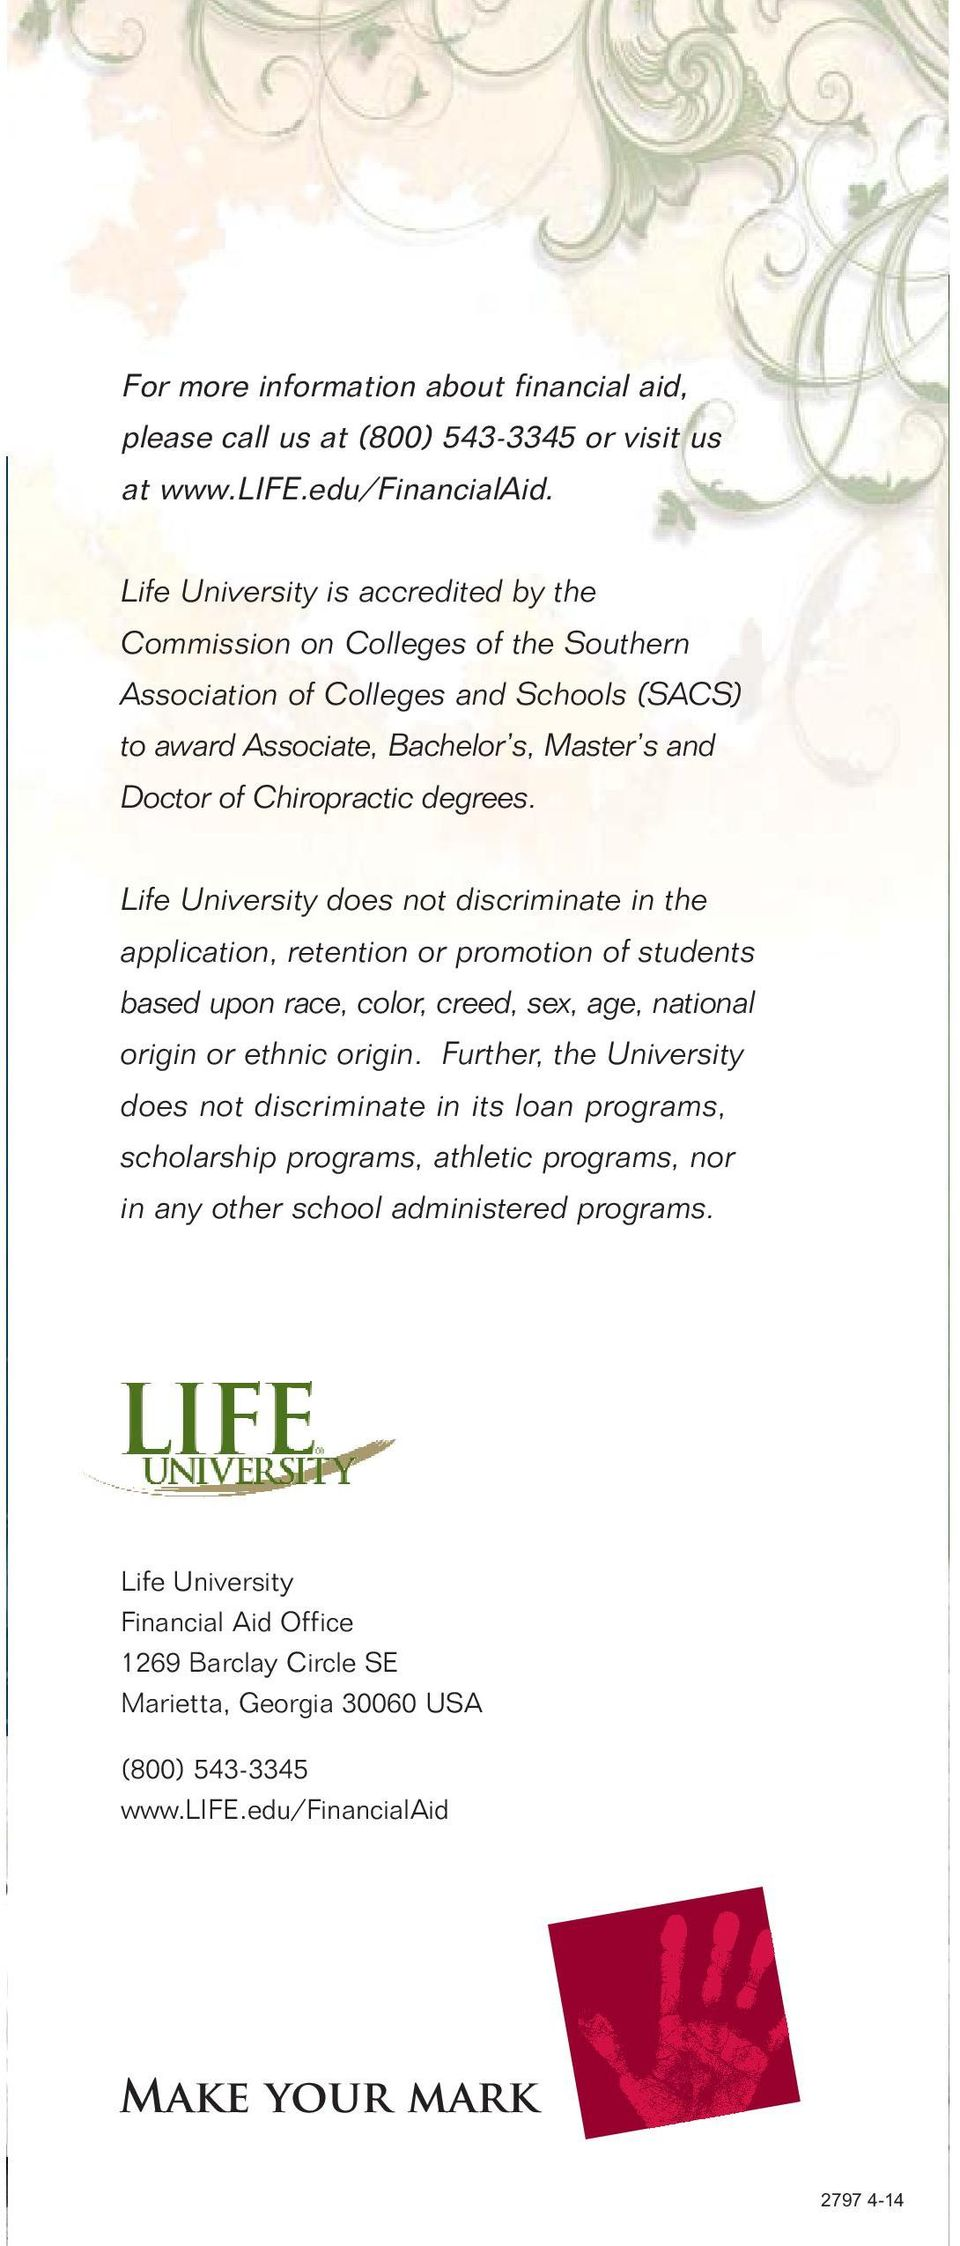 Life University does not discriminate in the application, retention or promotion of students based upon race, color, creed, sex, age, national origin or ethnic origin.